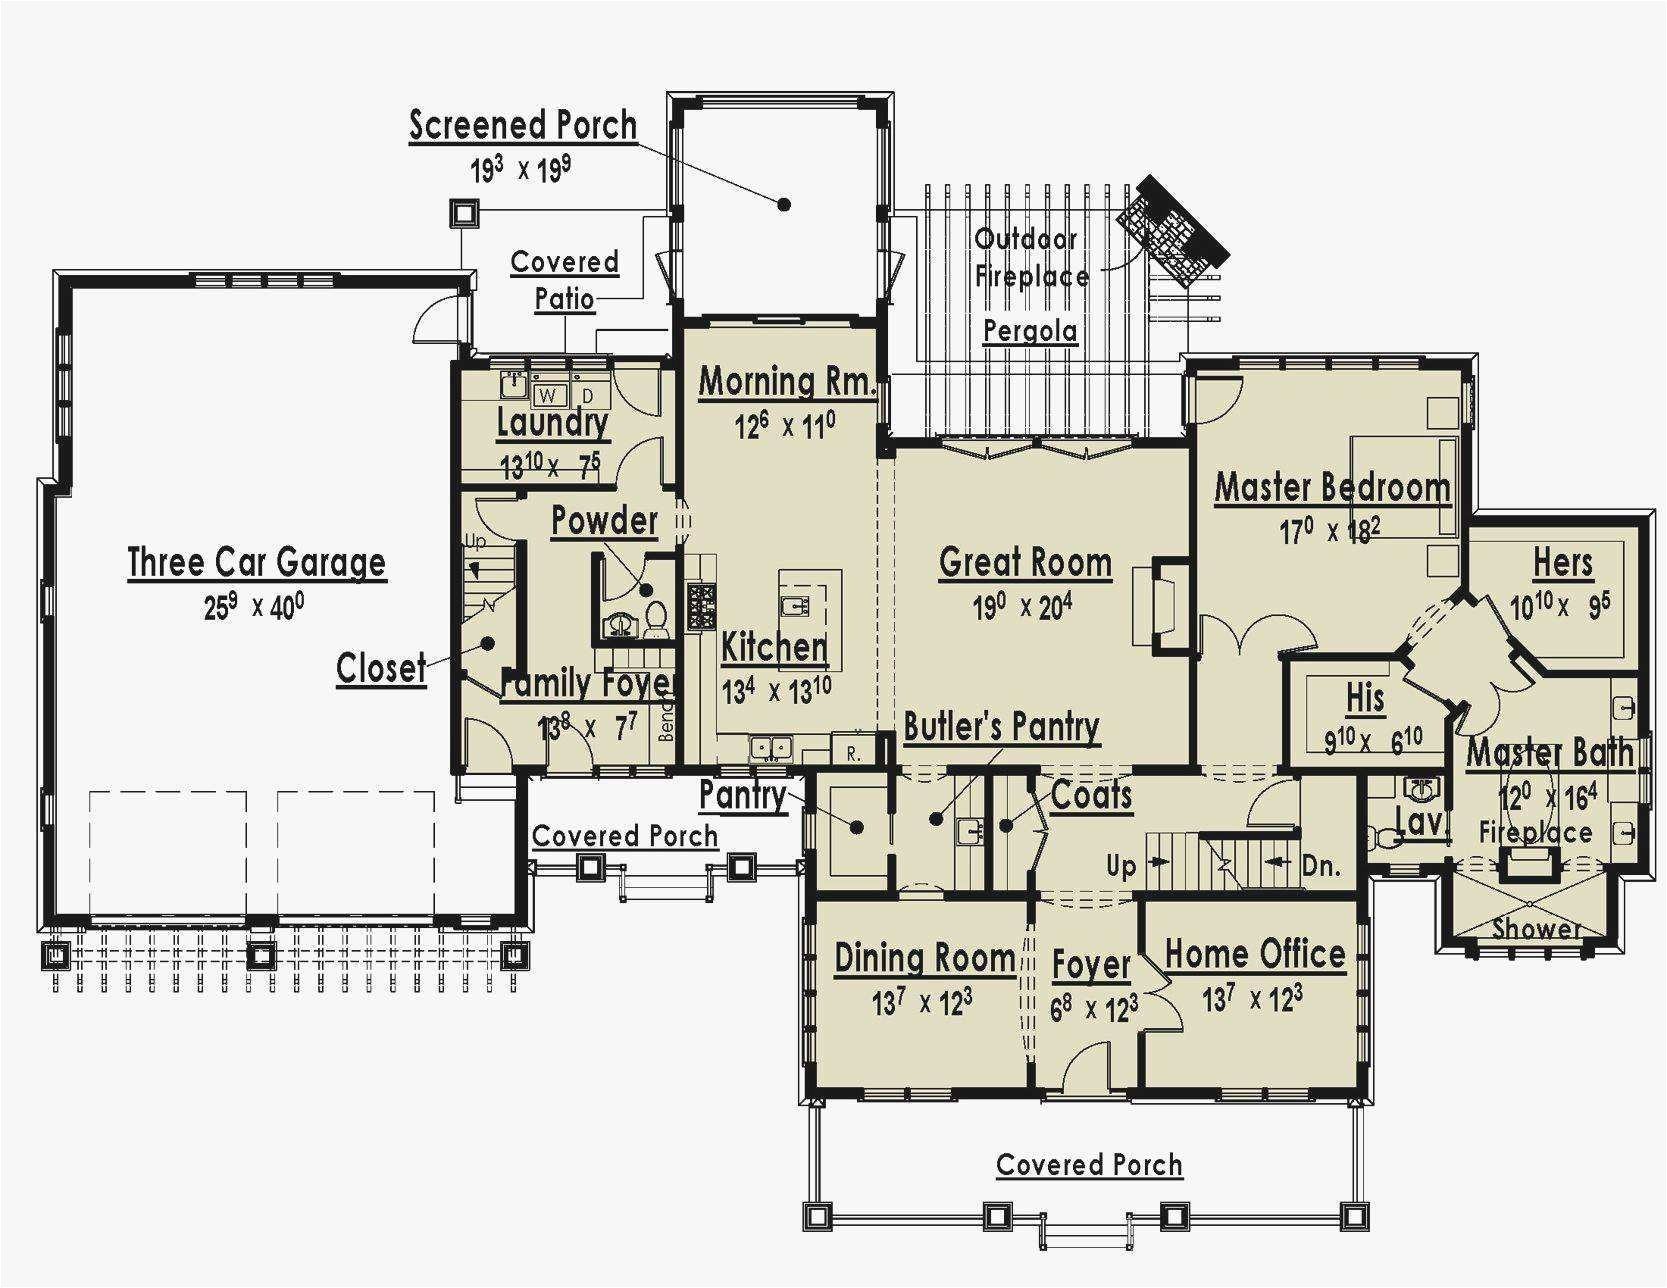 5 bedroom house plans with 2 master suites inspirational house plans 2 master suites single story webbkyrkan